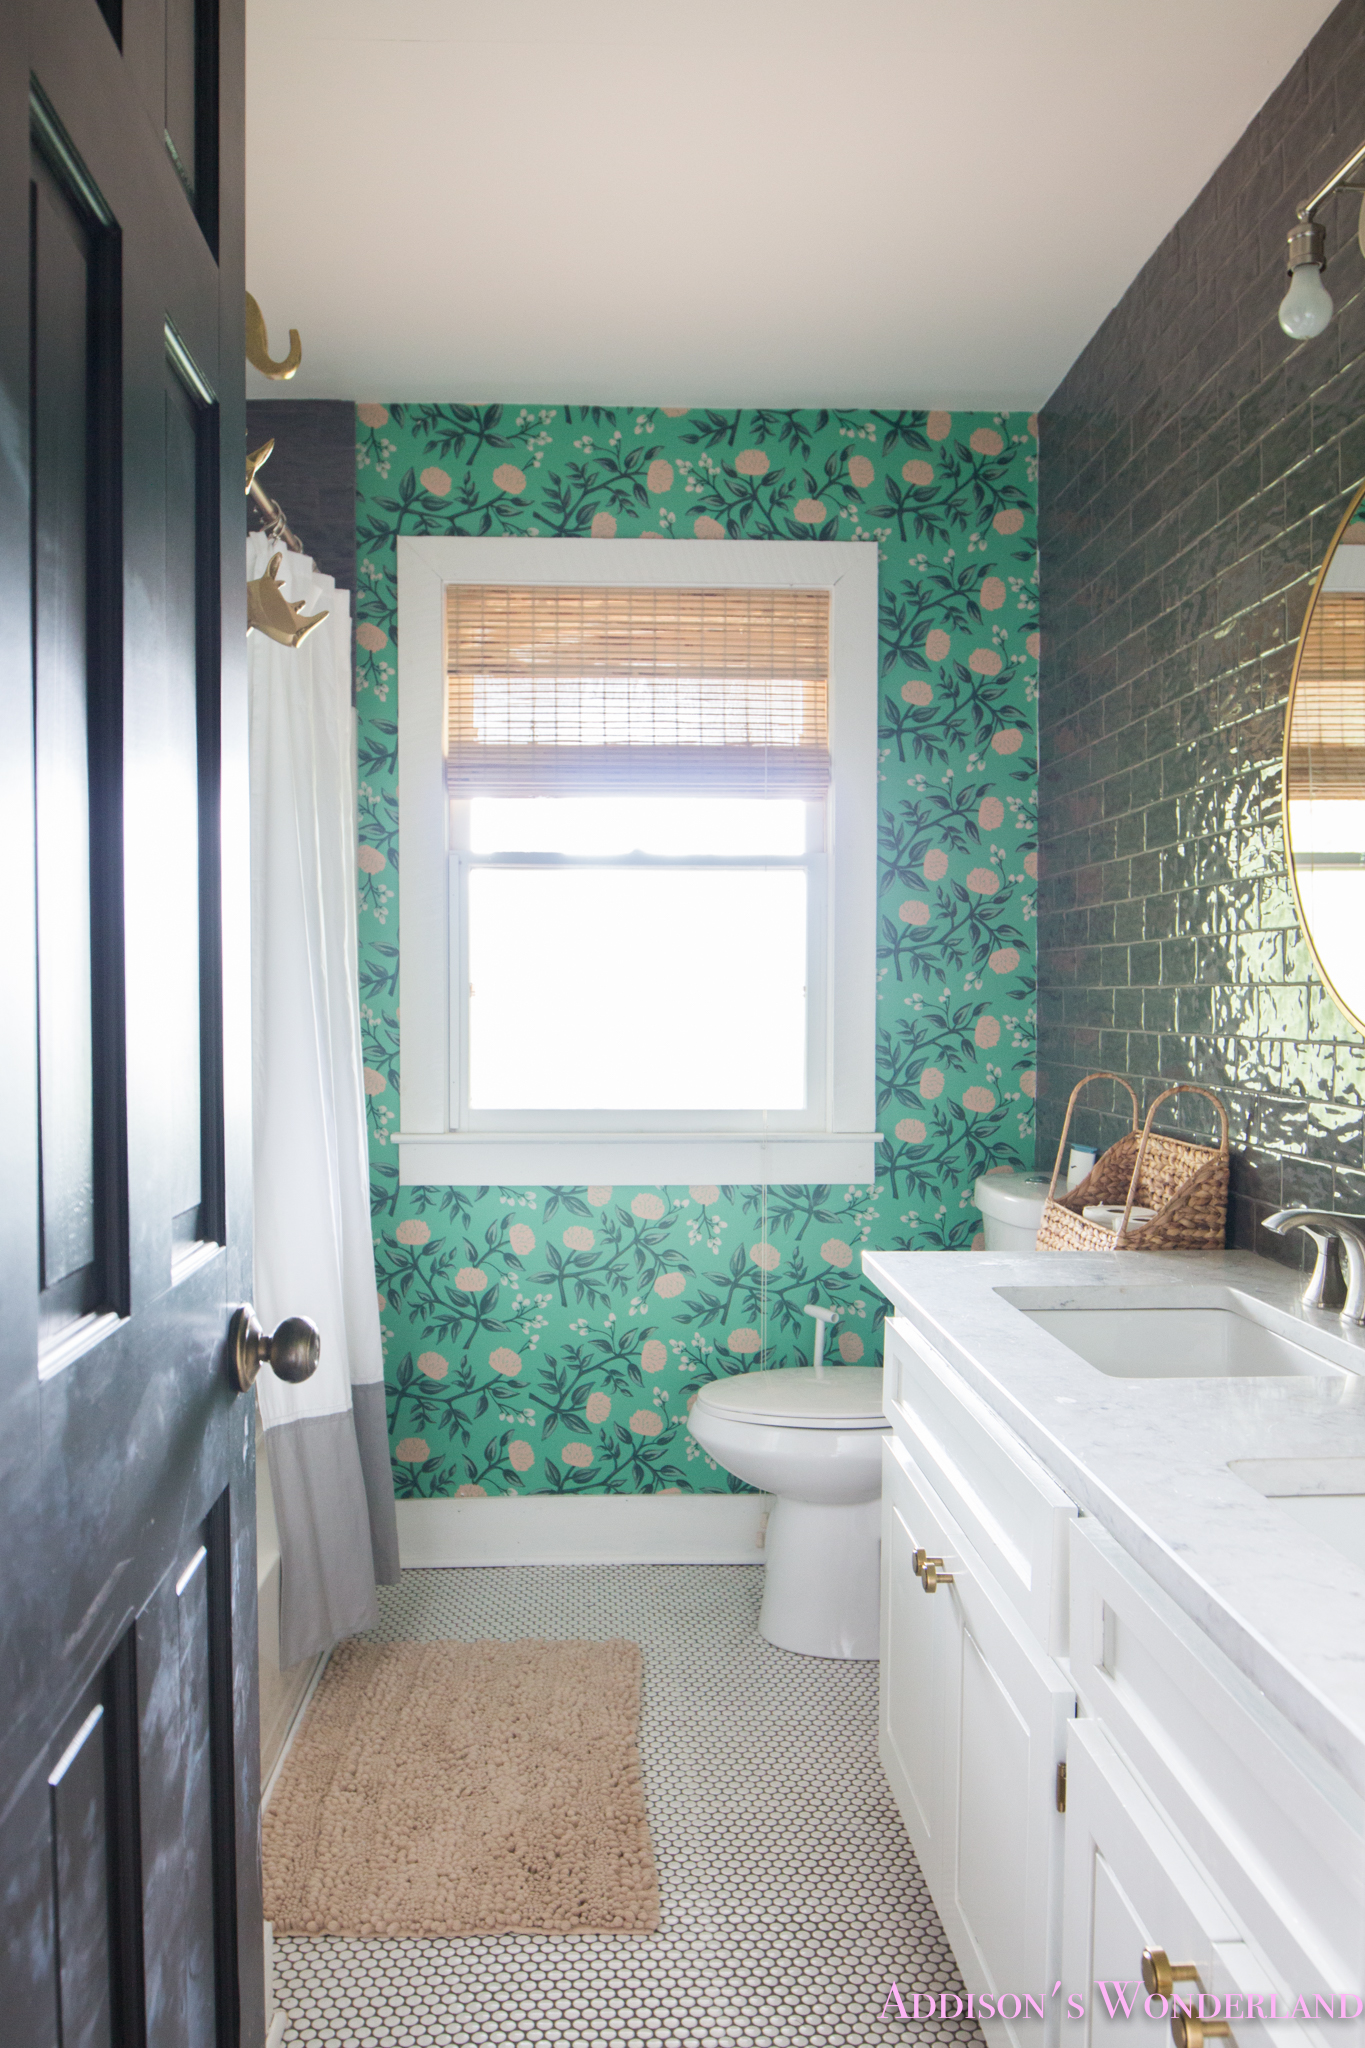 Our Green Poppies Wallpaper Cabin Guest Bathroom Reveal!